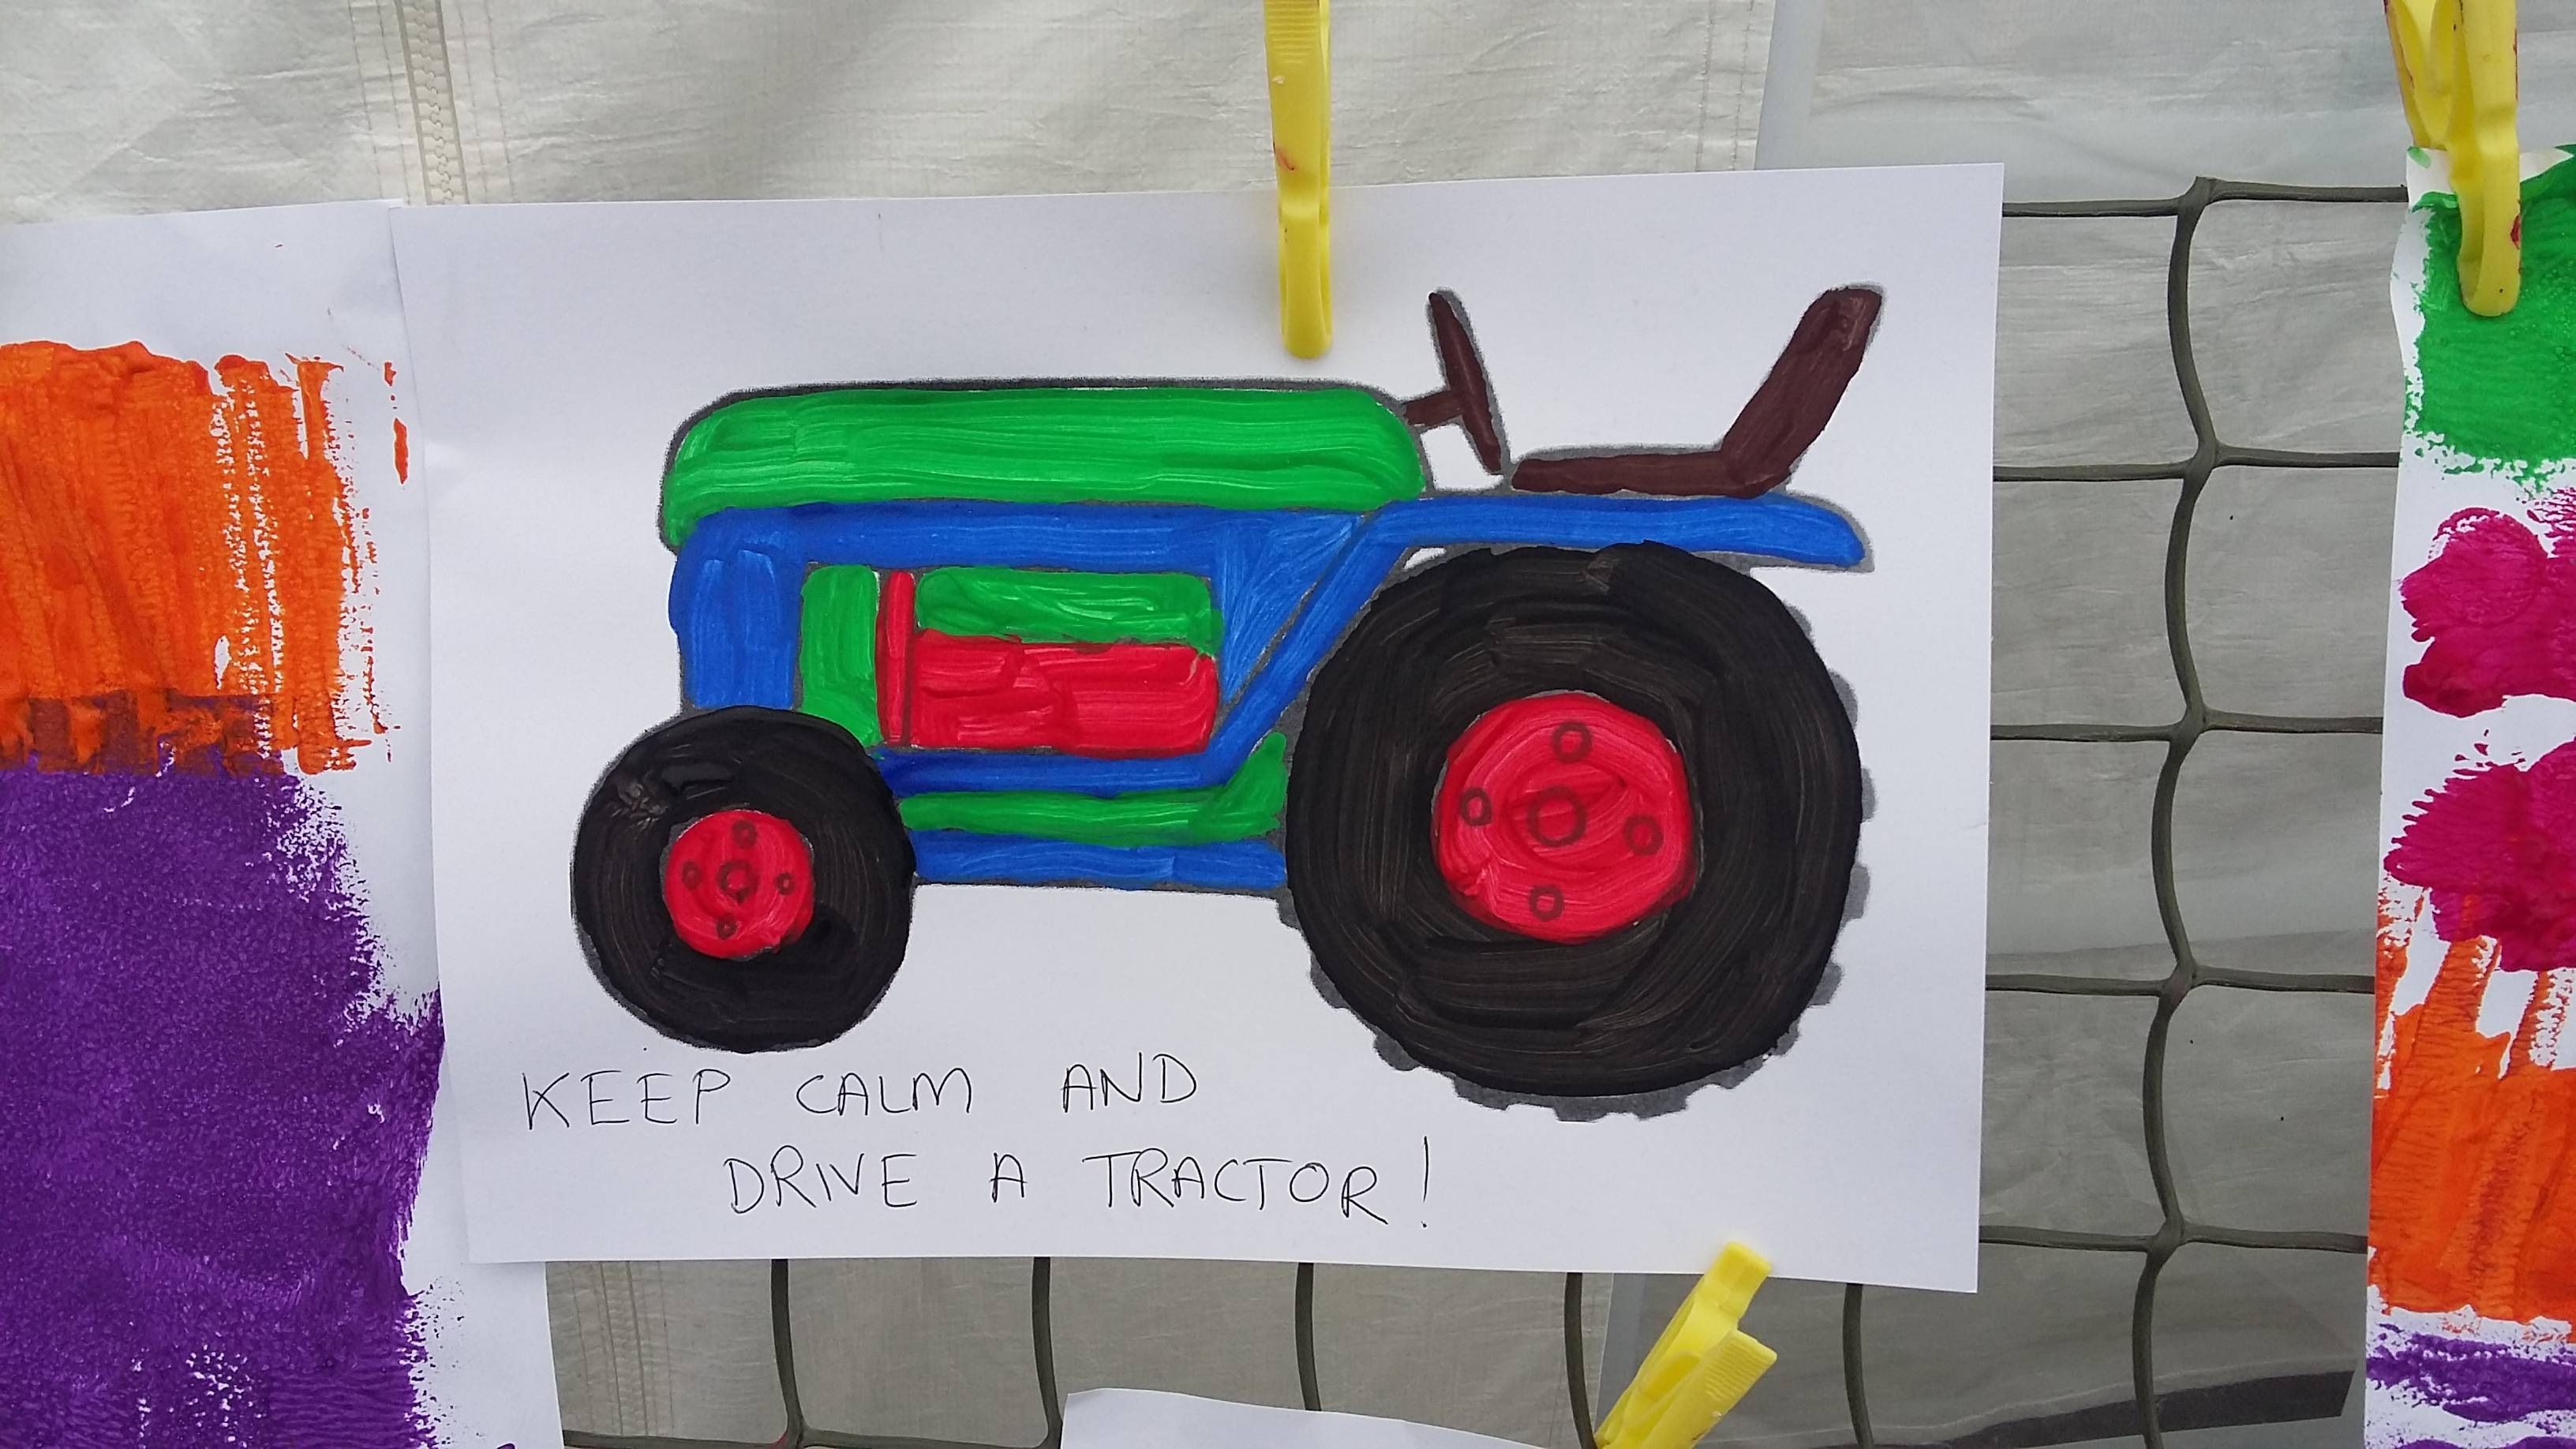 Tractor picture 2017